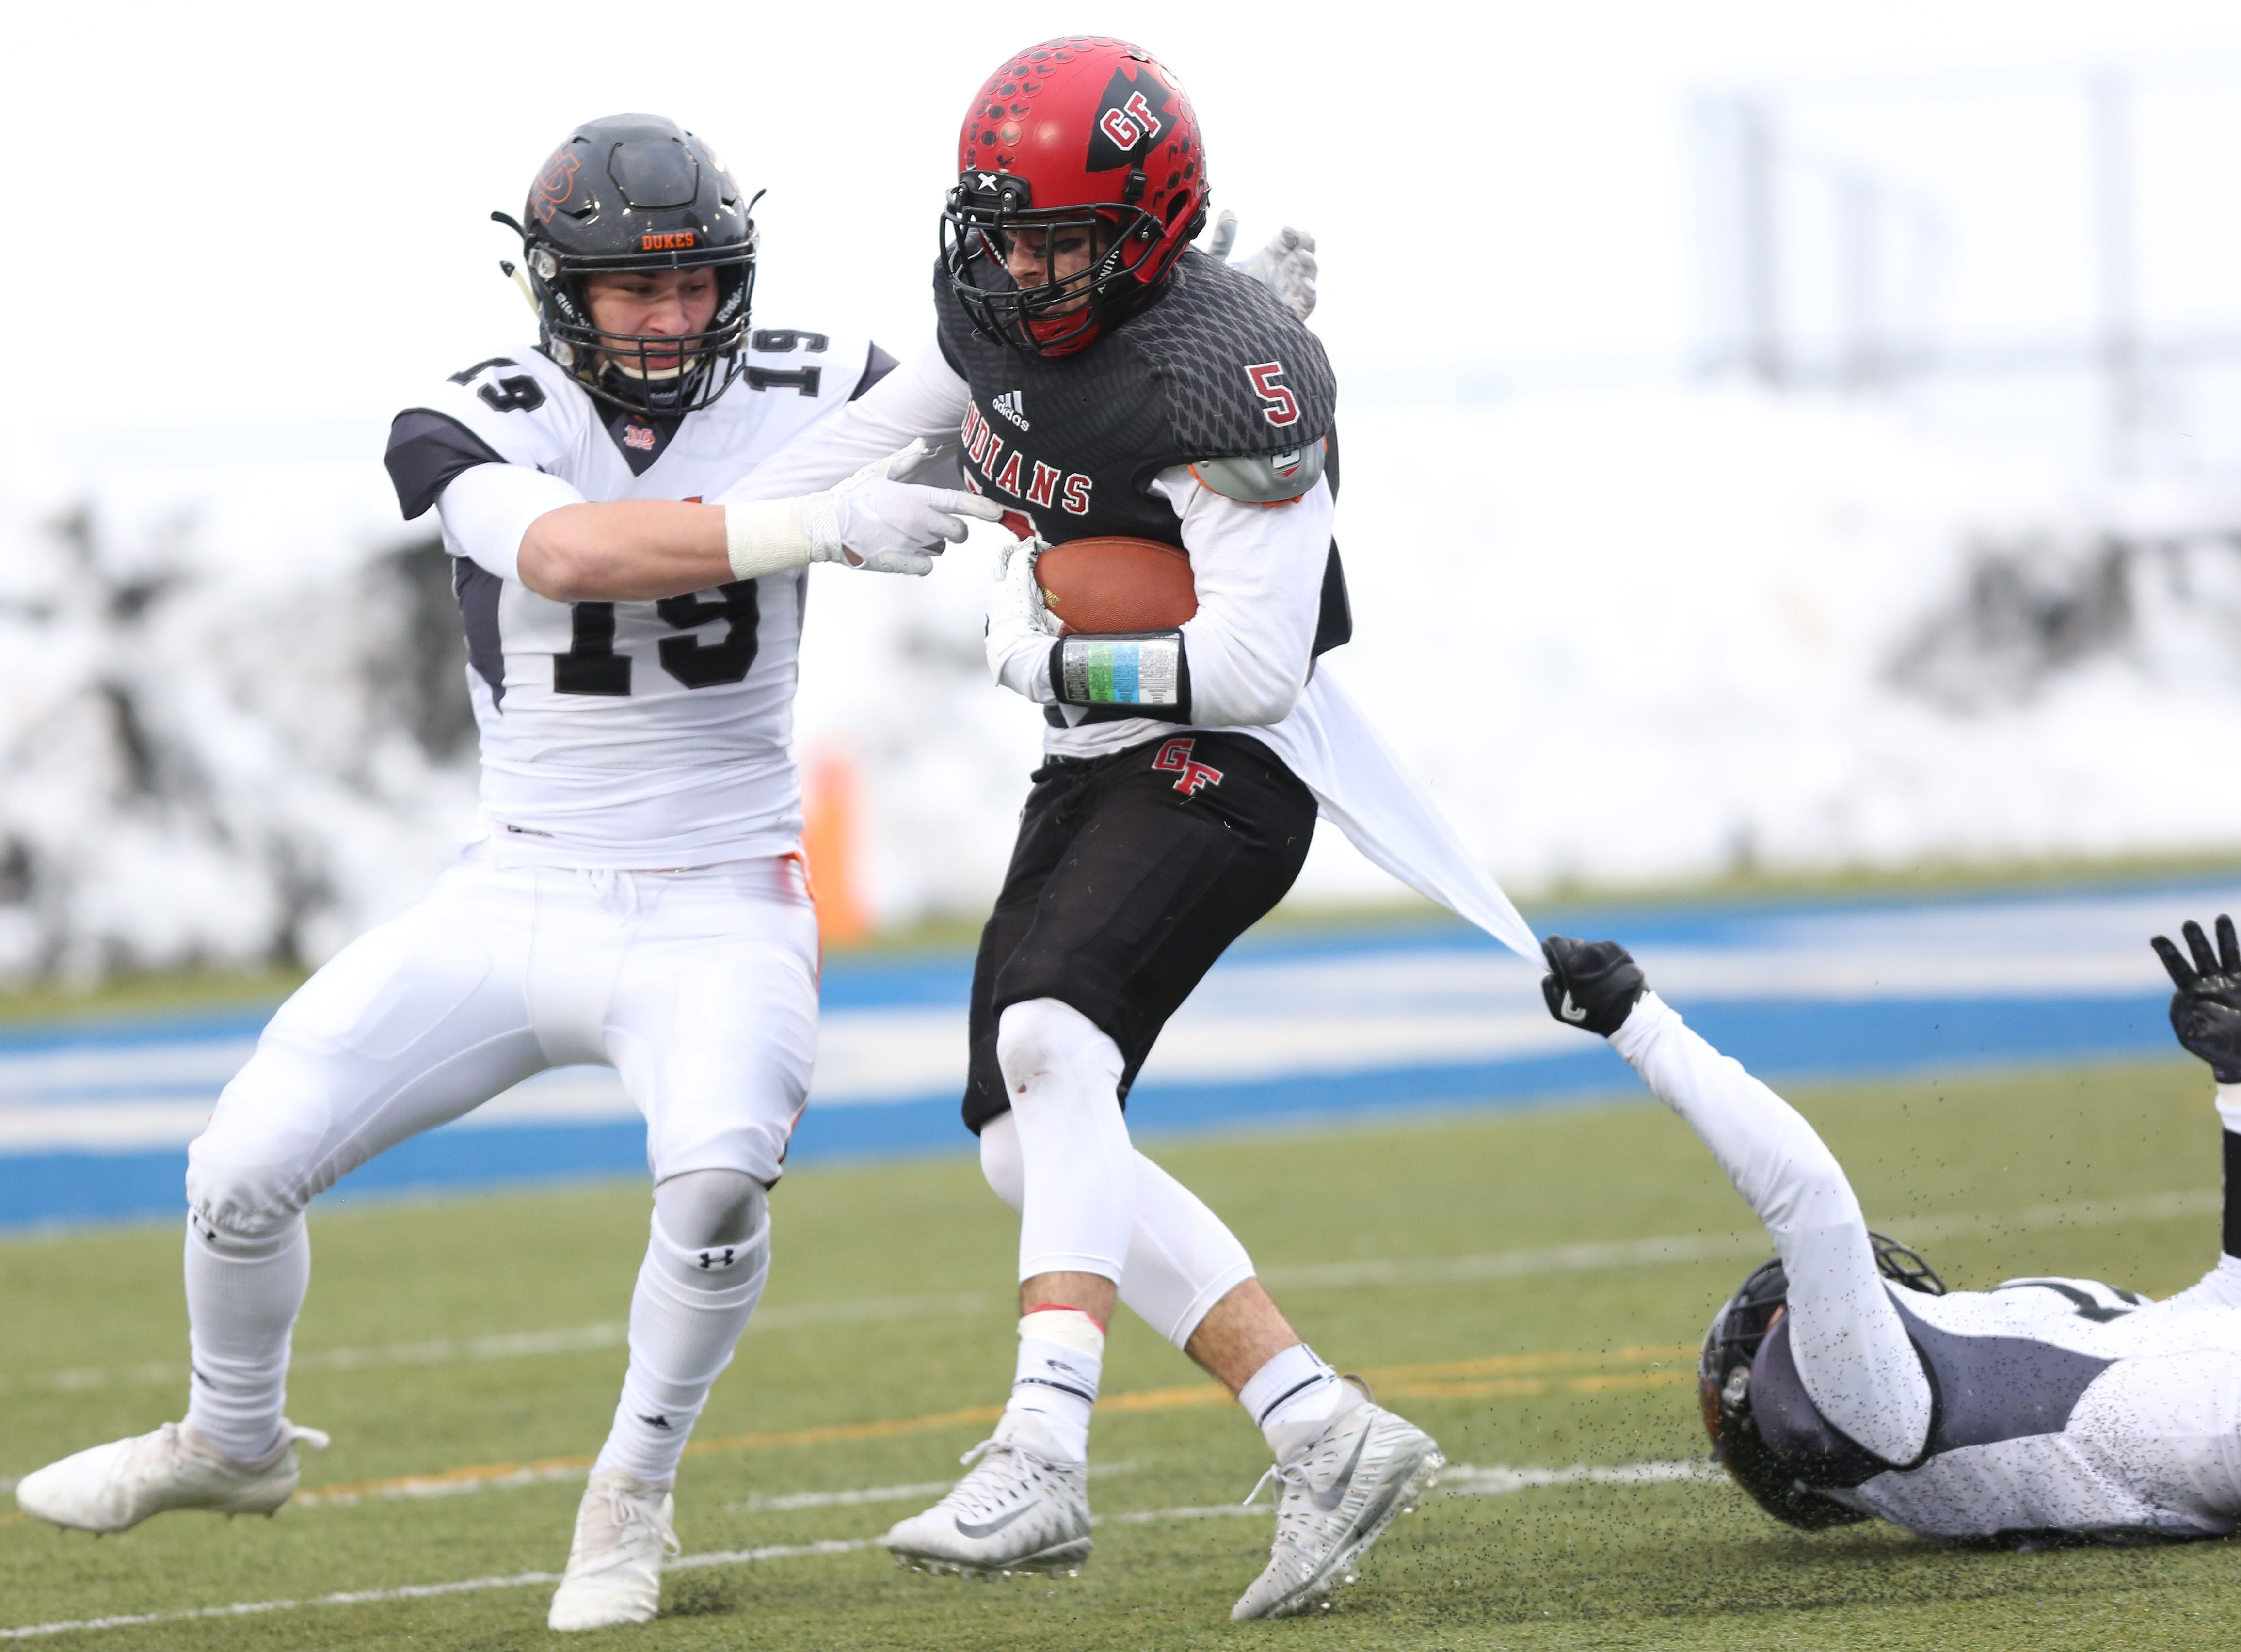 Glens Falls' David Barclay (5) tries to break away from Marlboro's Jack Young (19) and Eric Borchert (10)  during the state Class B semifinal game at Middletown High School Nov. 17, 2018.